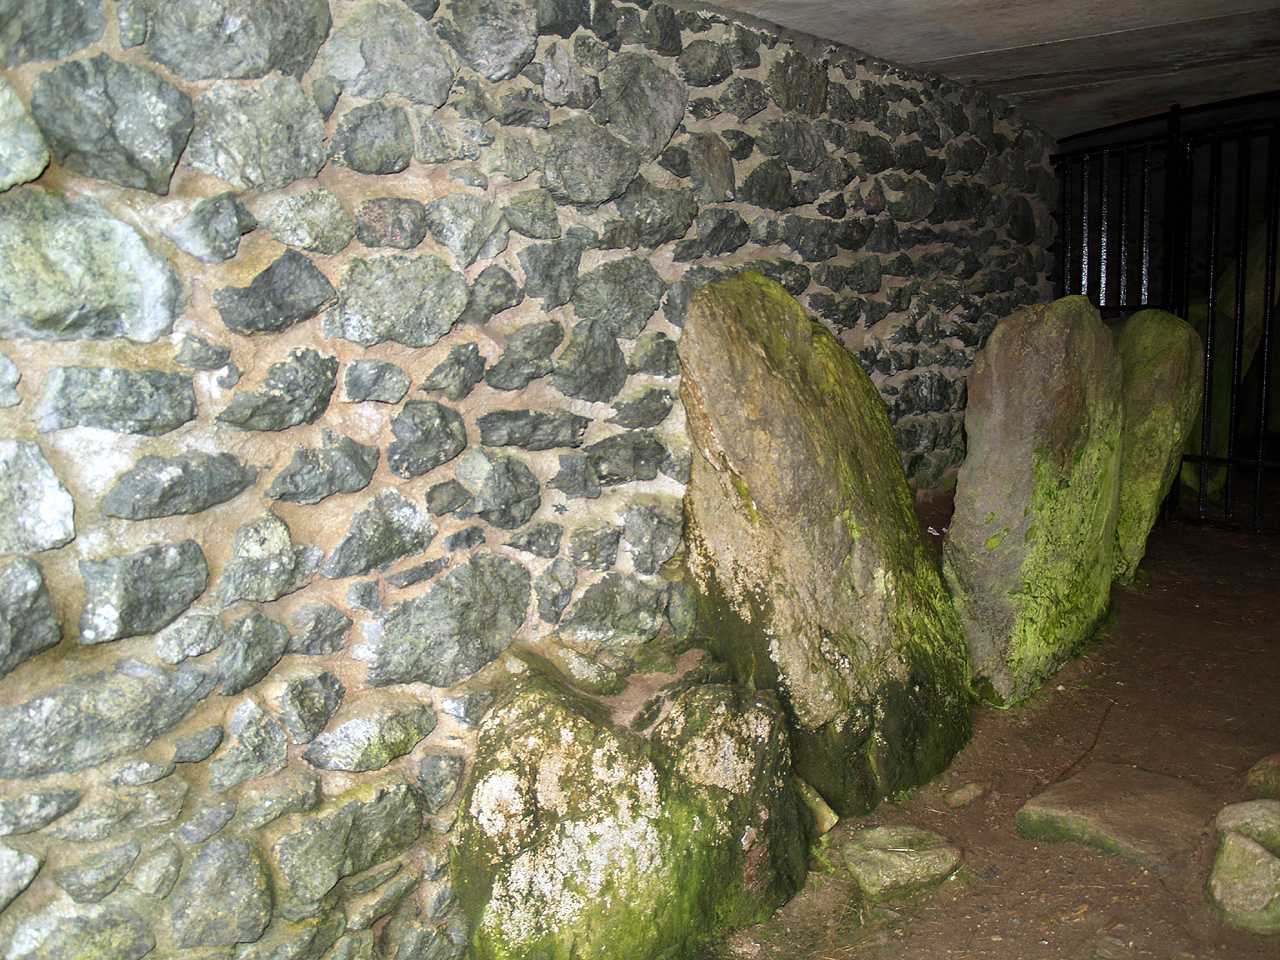 Anglesey, Llanfaelog, Barclodiad-y-Gawres Burial Chamber - ancient standing stones line the entrance to the chamber